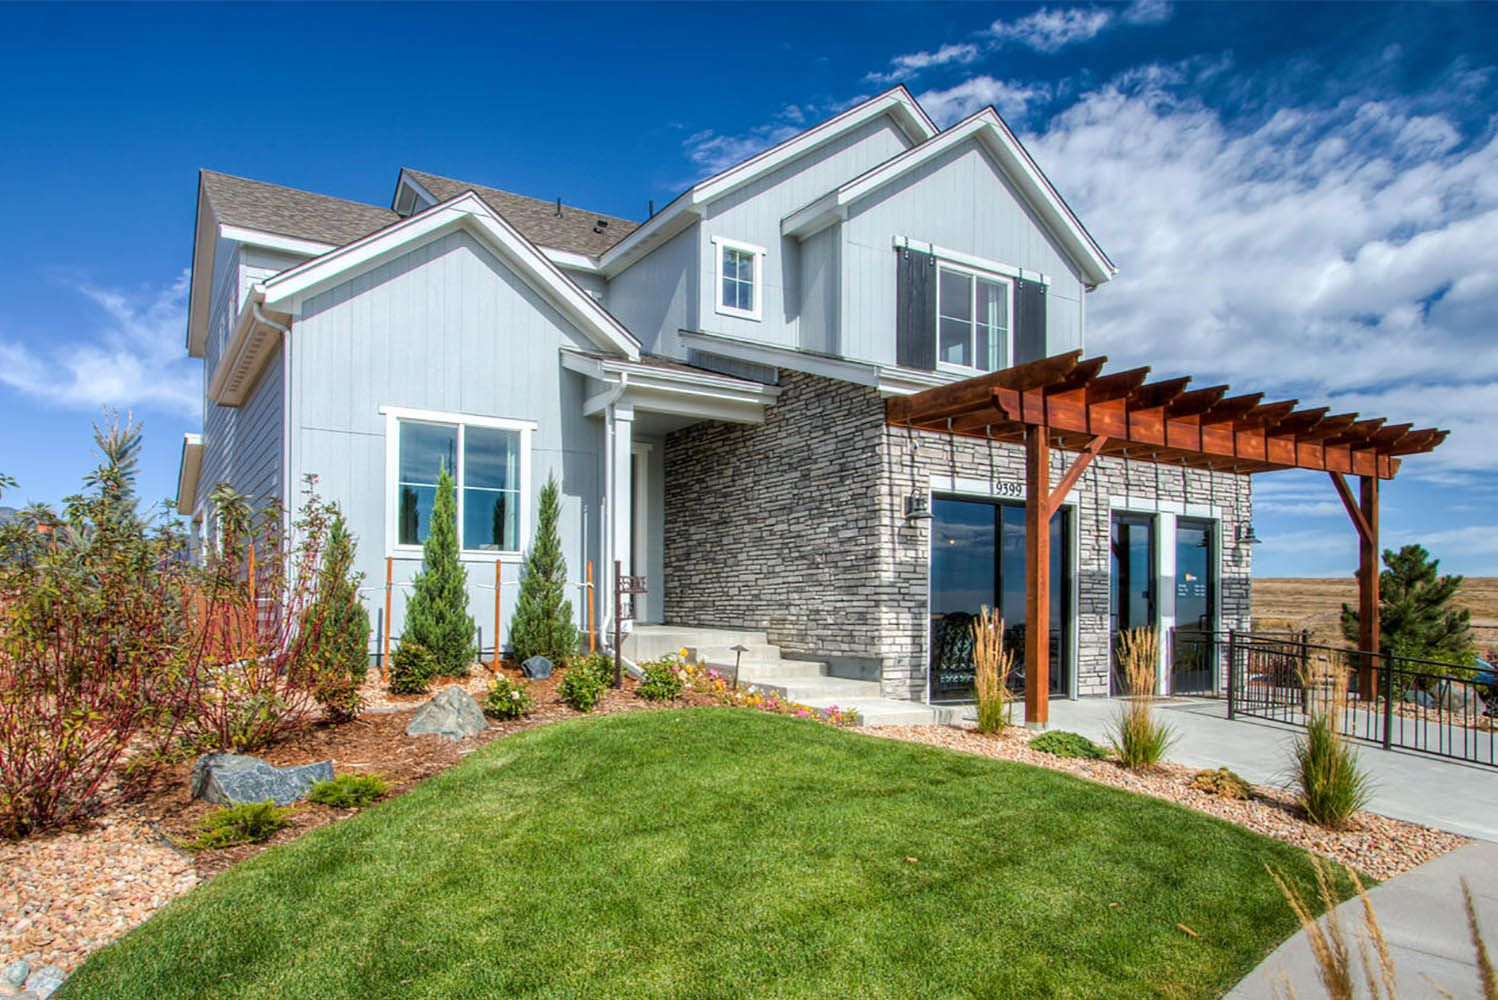 Photo of 9399 Yucca Way, Arvada, CO 80007